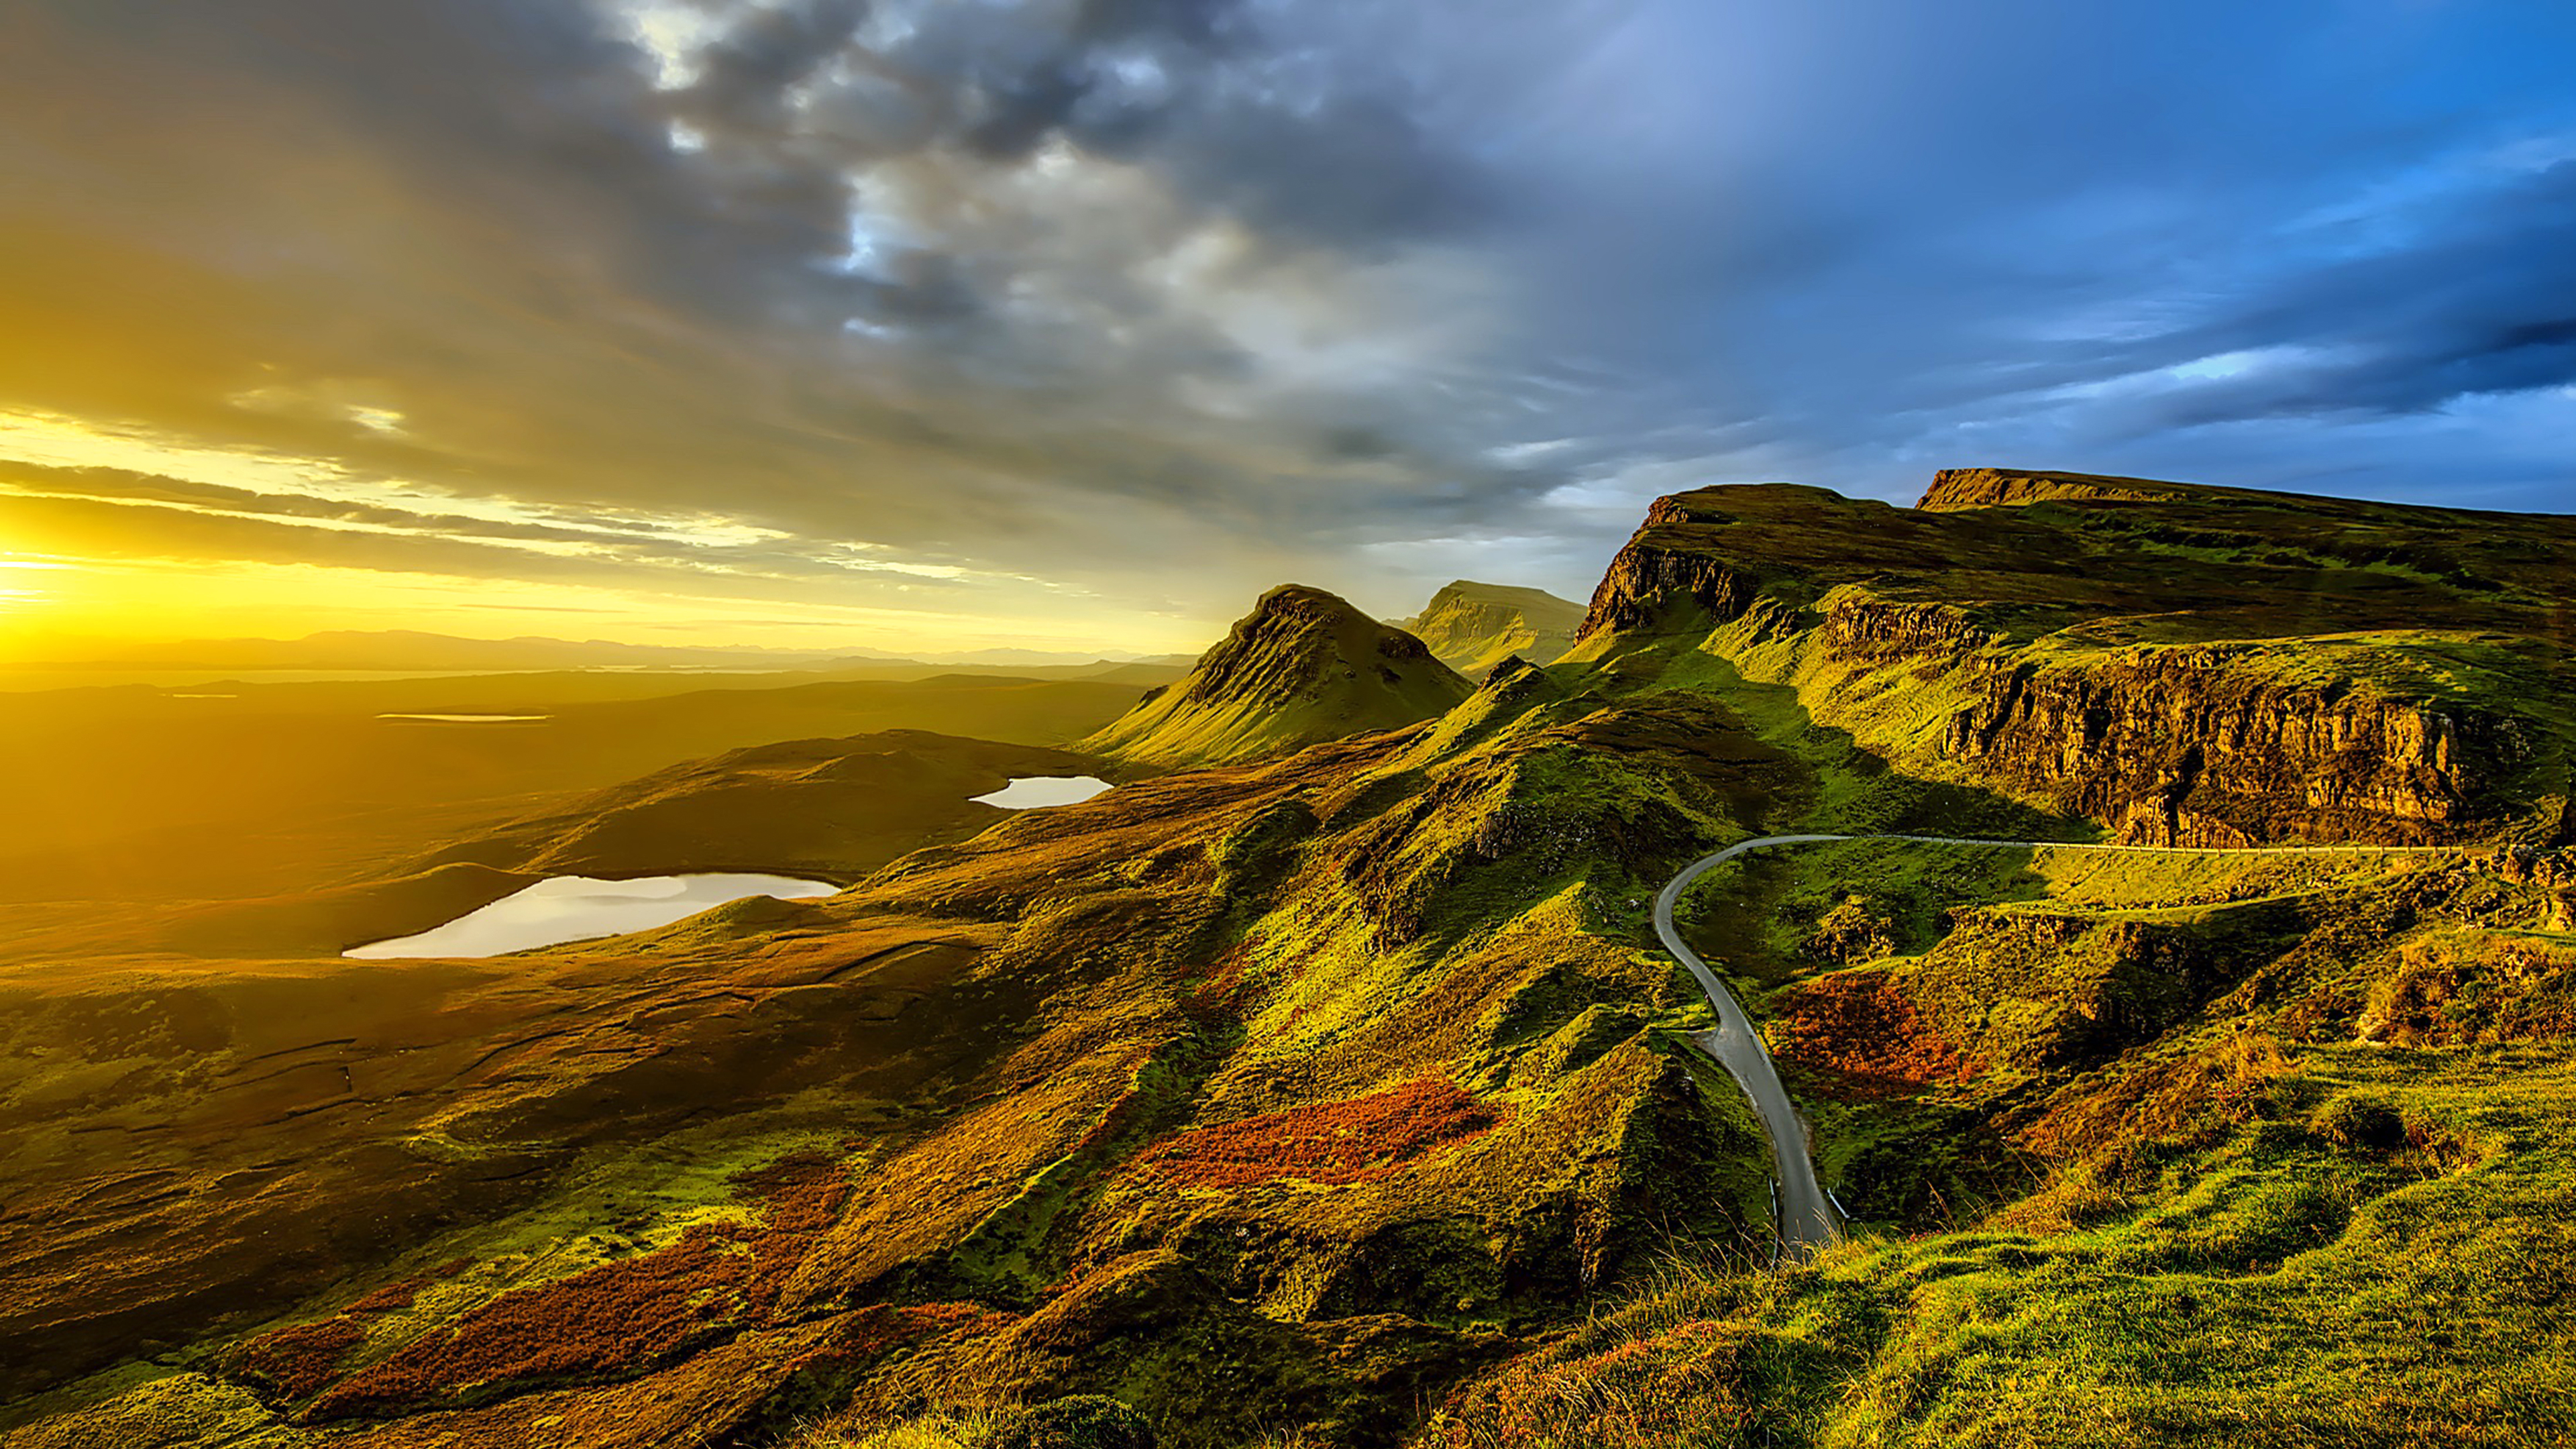 https://www.chromethemer.com/wallpapers/chromebook-wallpapers/download/scotland-3840x2160.jpg